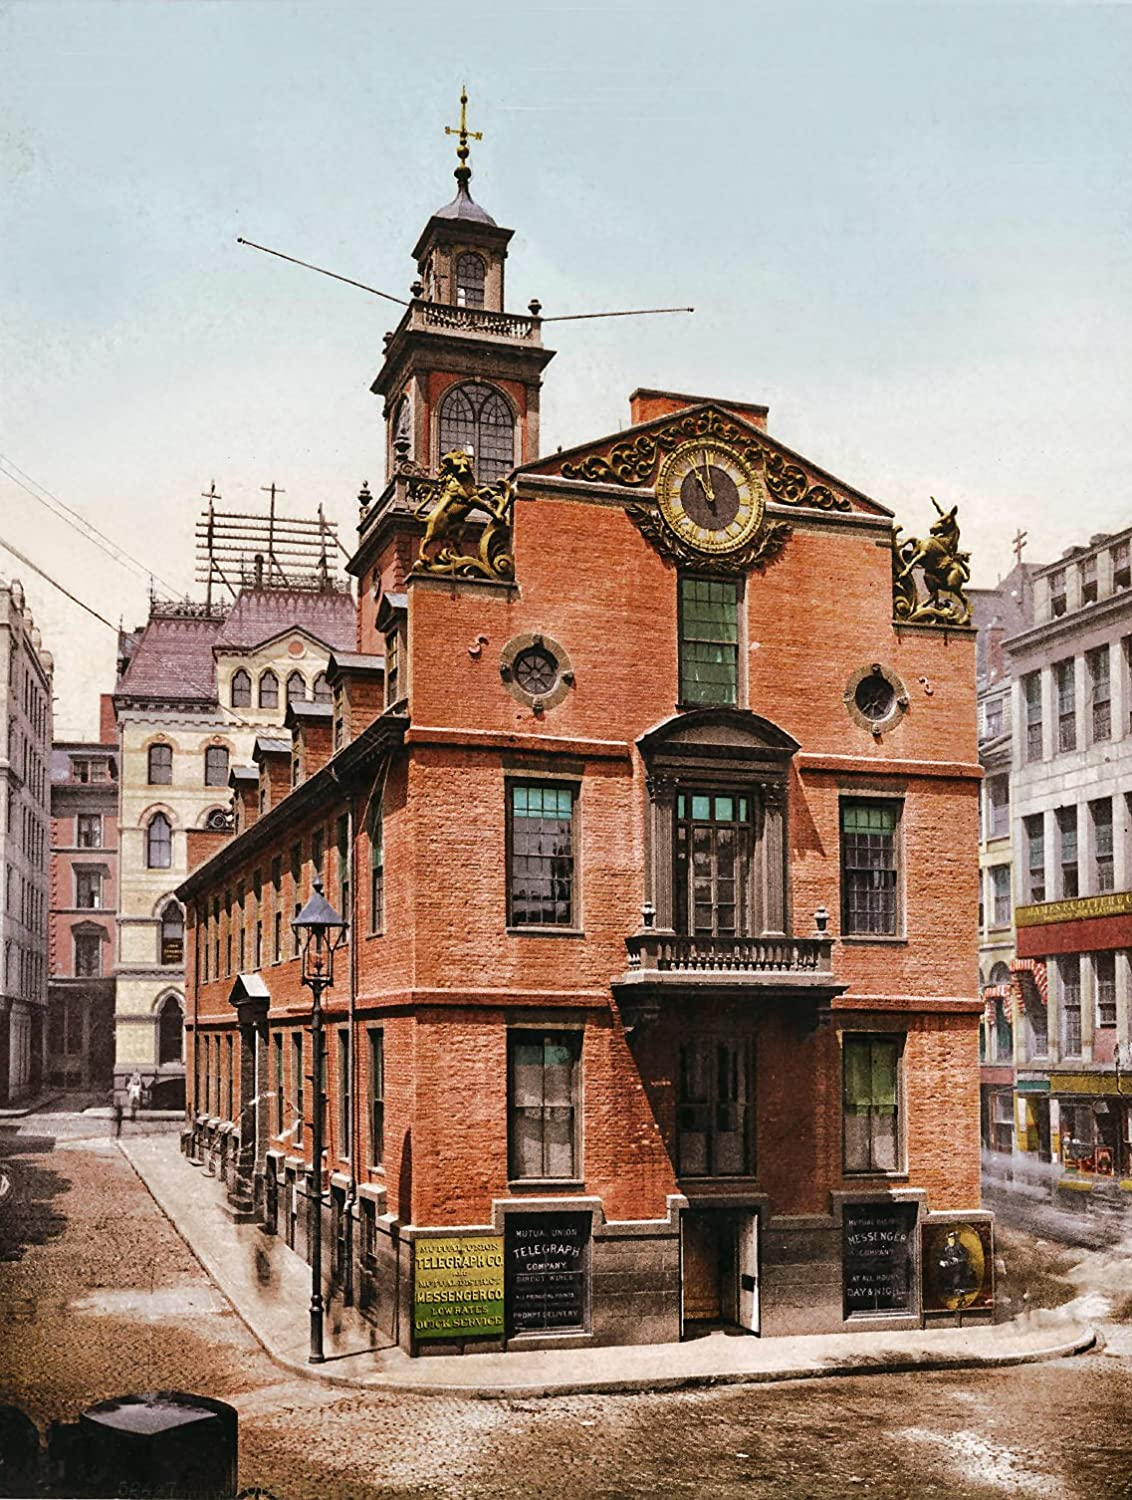 Amazon Com Old State House Boston 1900 Reproduction Vintage Antique Artwork Collection Of Old Photos Of Cities 8 5 X 11 Scrap Booking Home Decor Or Gift Giving And History Research Posters Prints